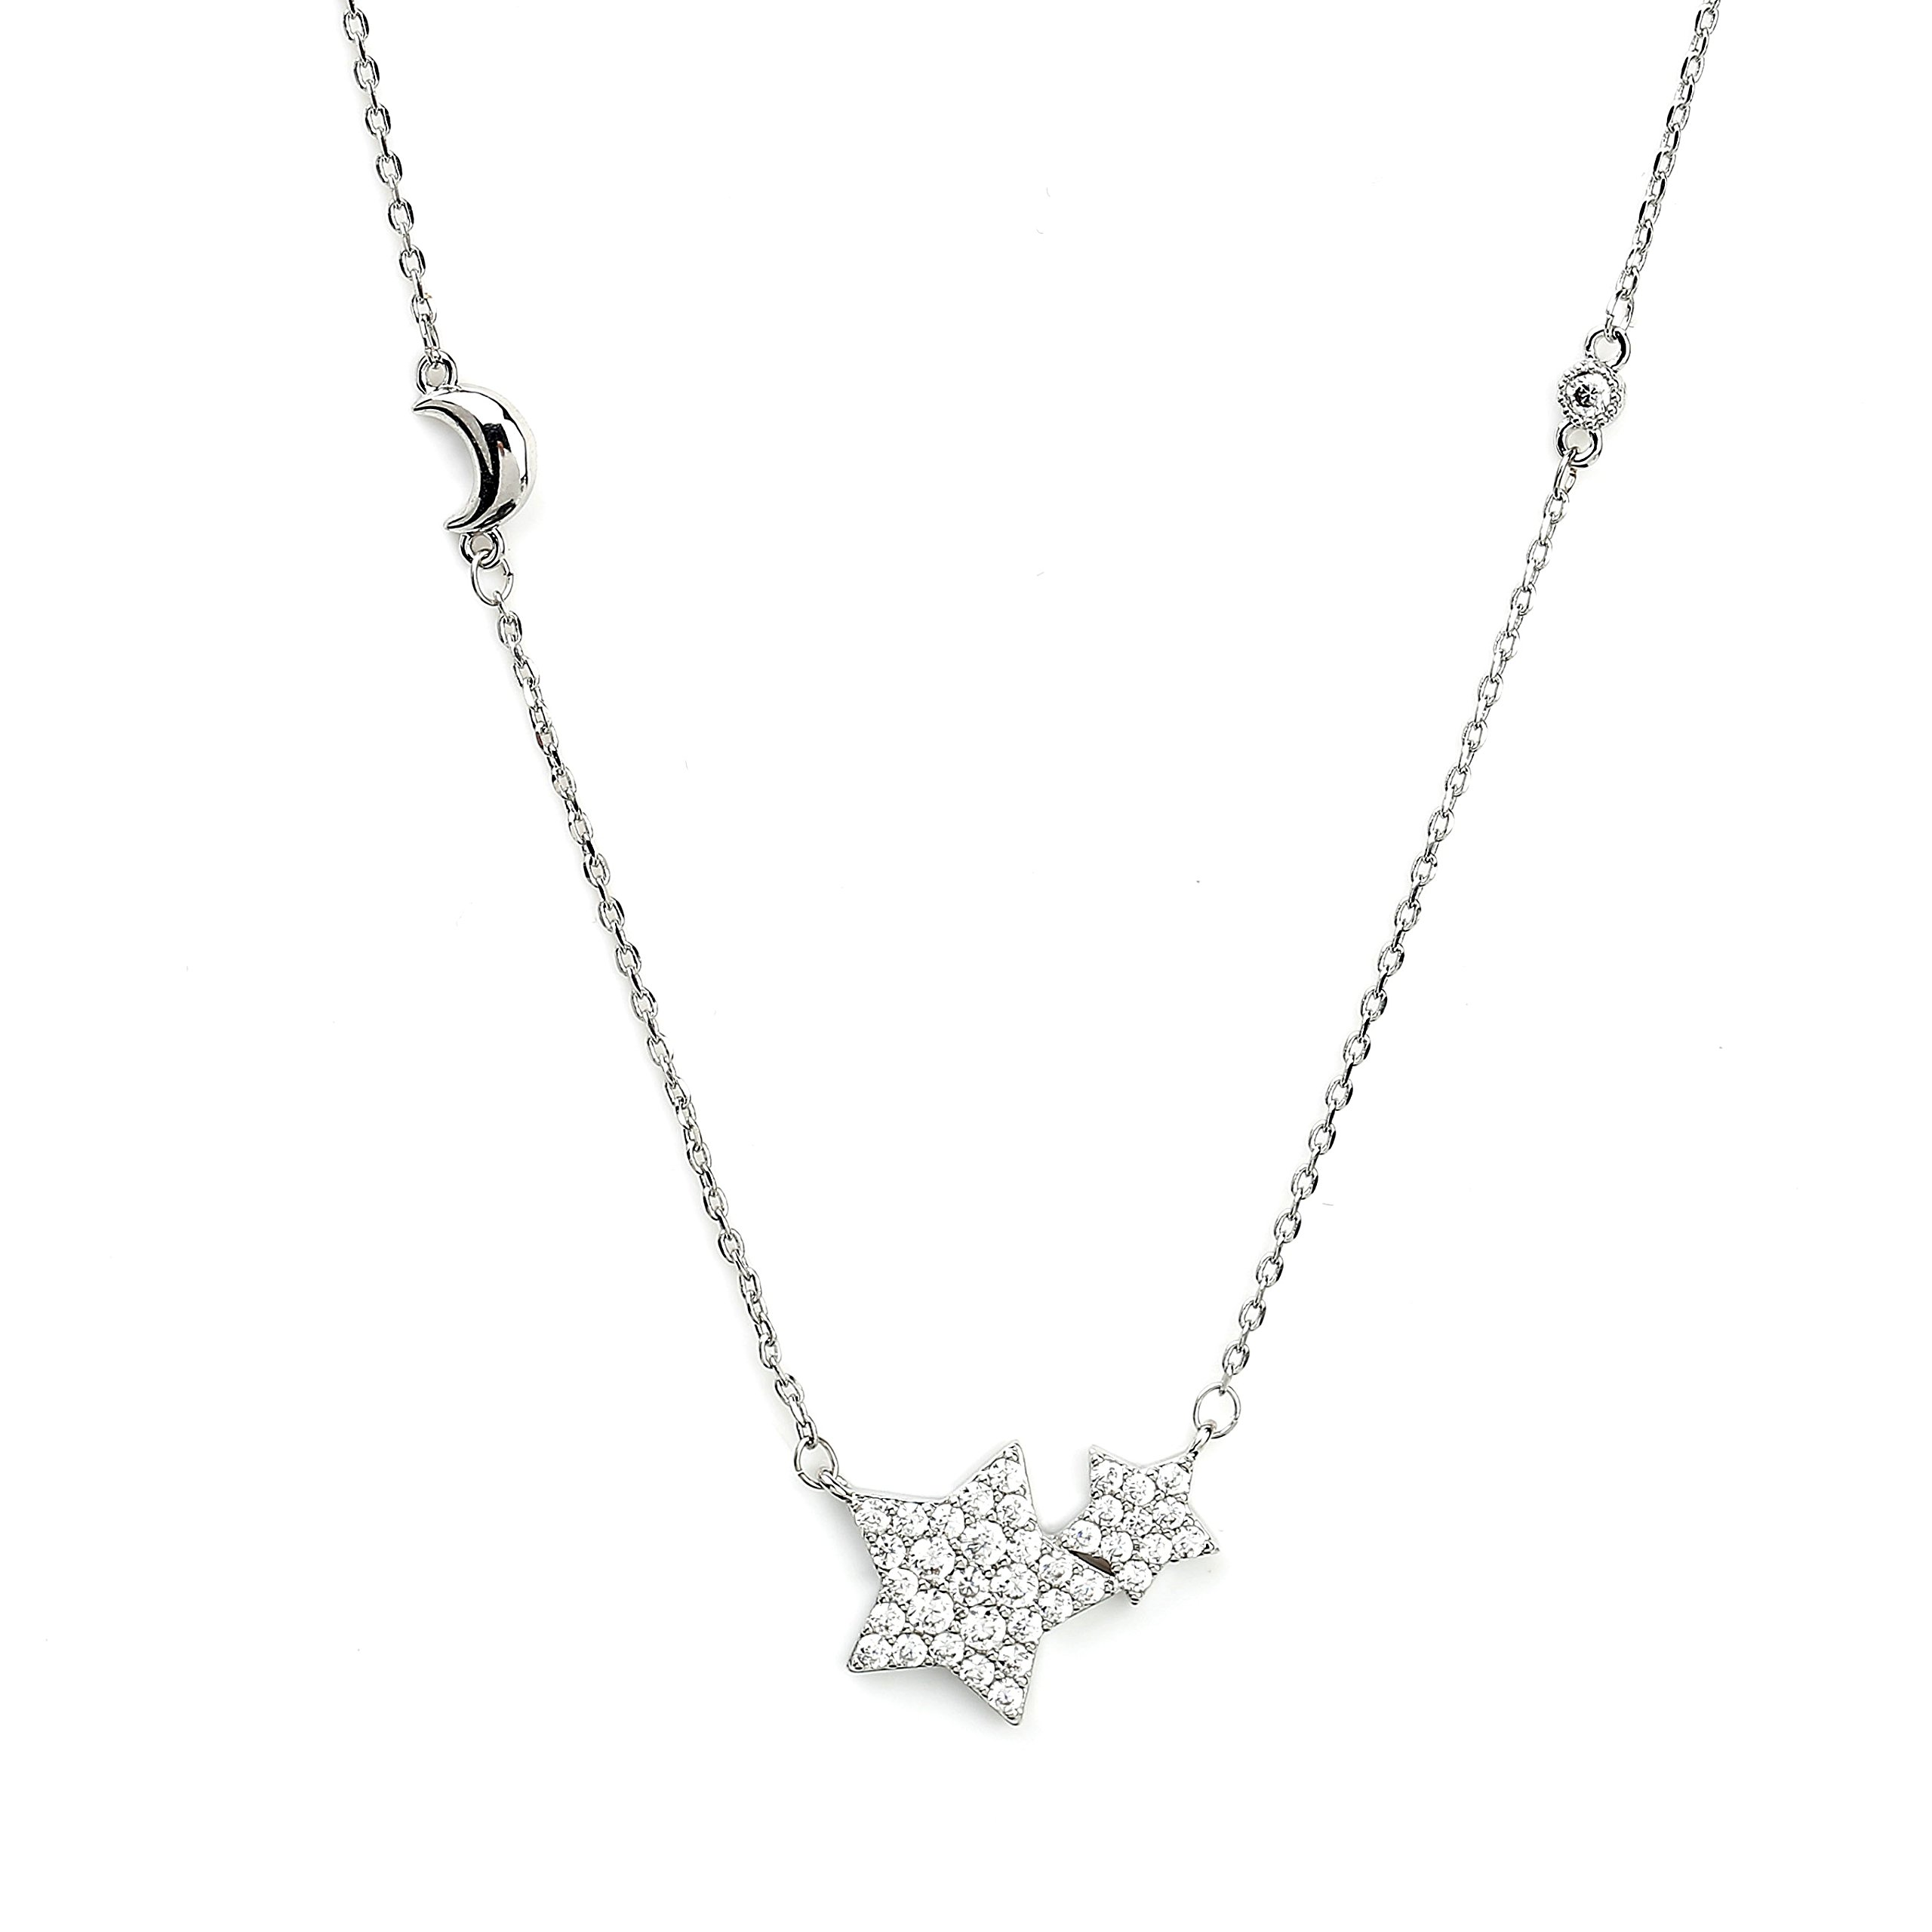 Delicate Silver (White Gold) Tone Star & Moon Necklace with Embedded Swarovski Style Crystals (Silver Stars)